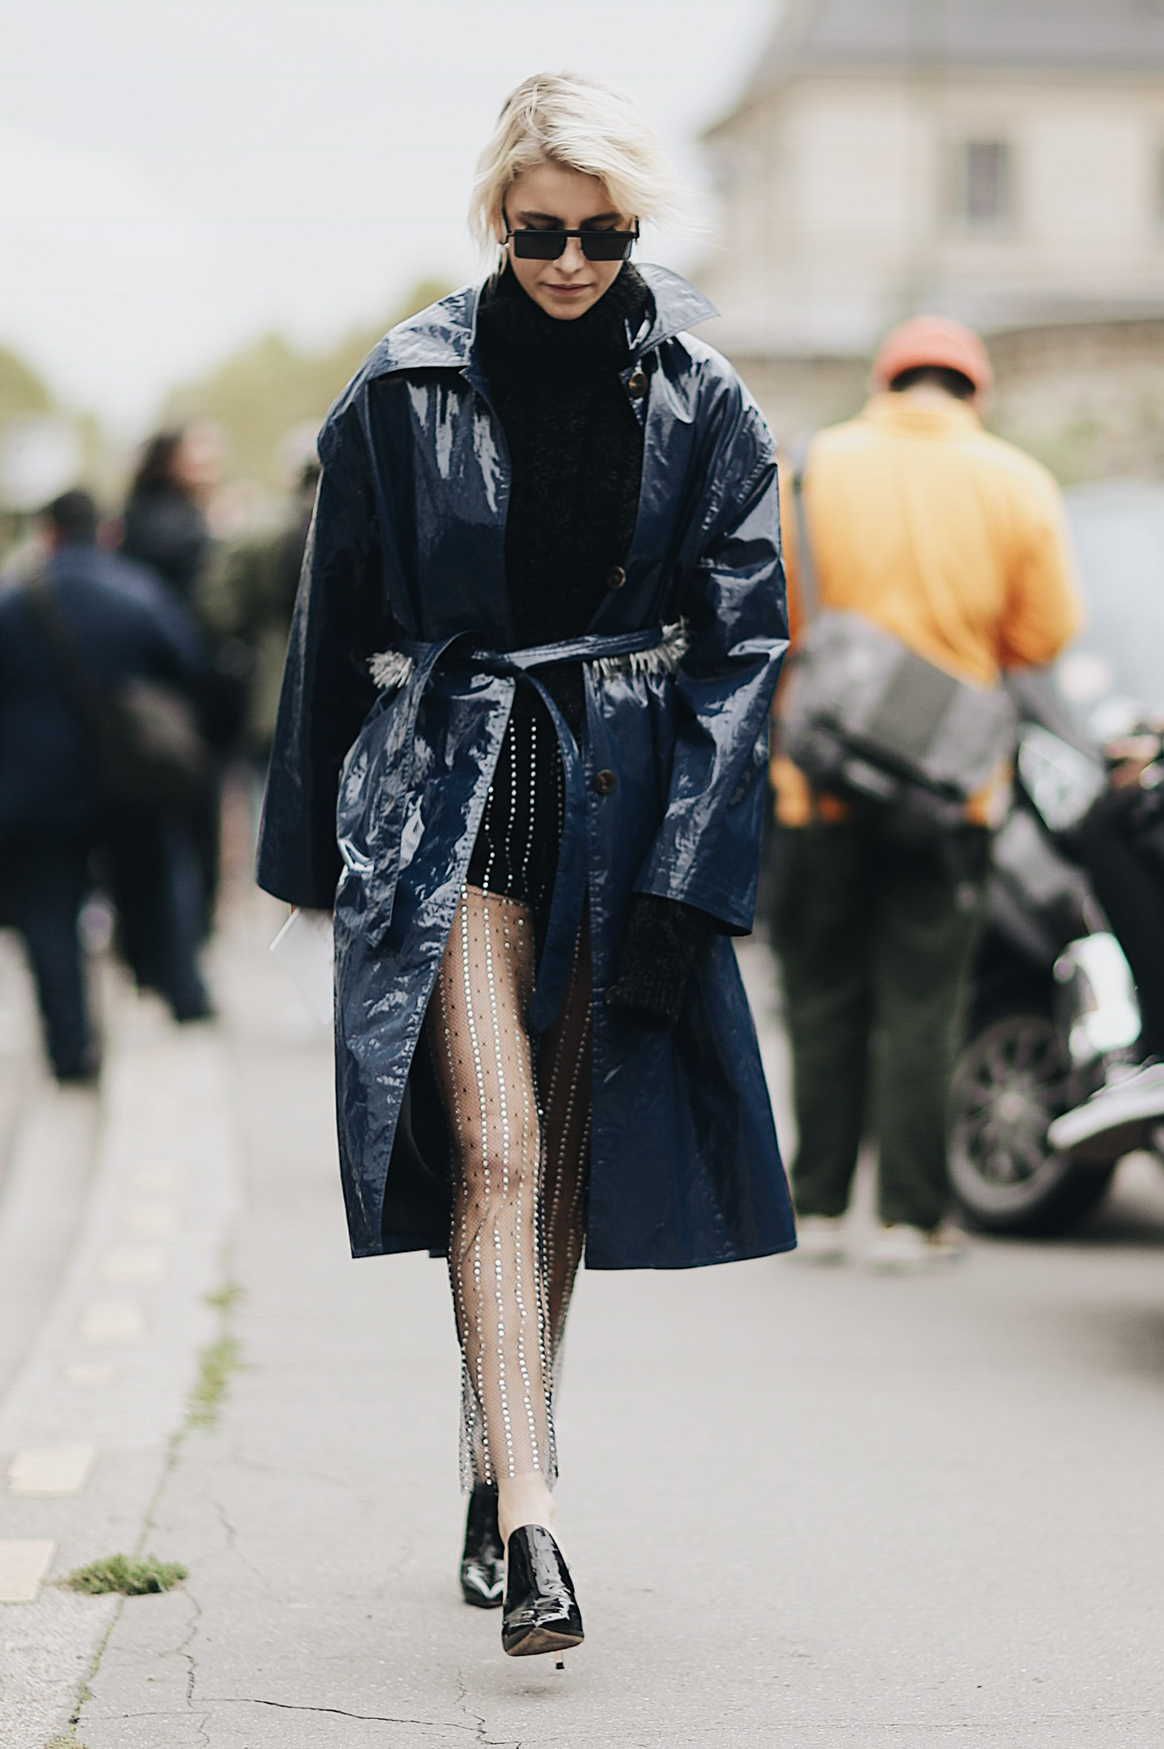 Street Style during Paris Fashion Week: Caro Dar